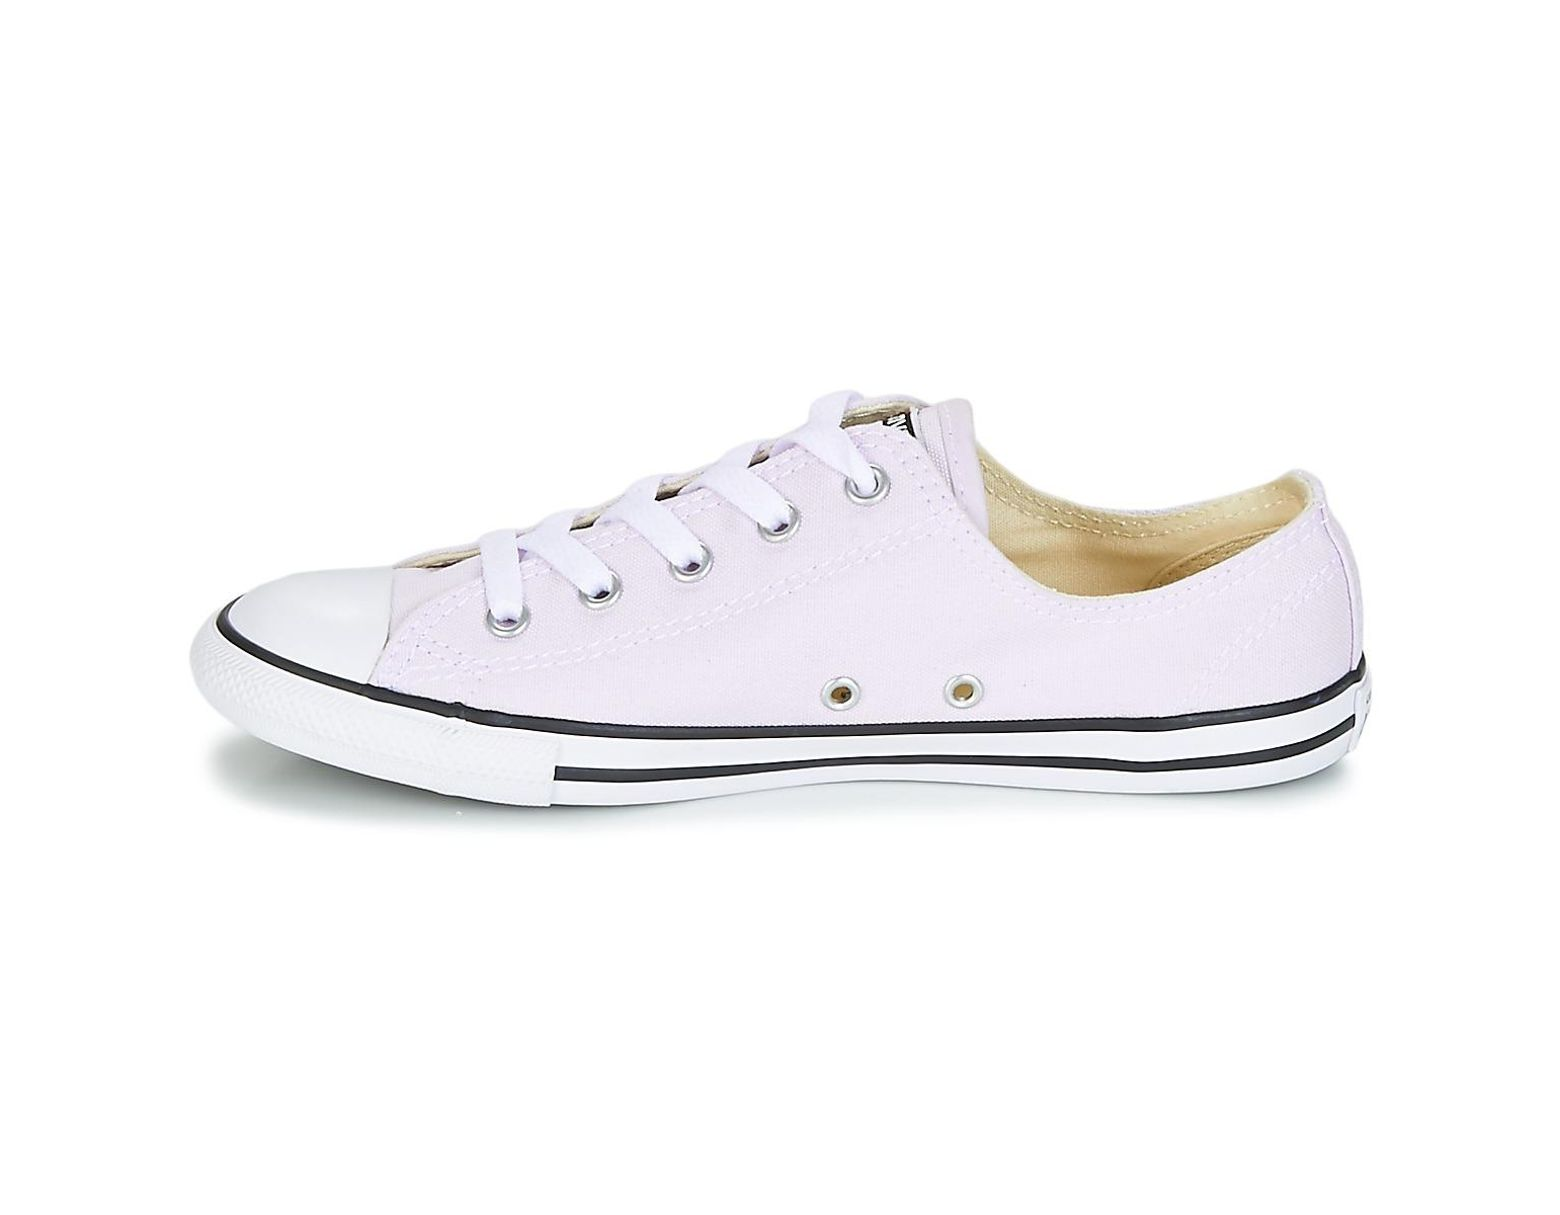 365d46dac67f6 Converse Chuck Taylor All Star Dainty Ox Canvas Color Women's Shoes ( trainers) In Purple in Purple - Lyst